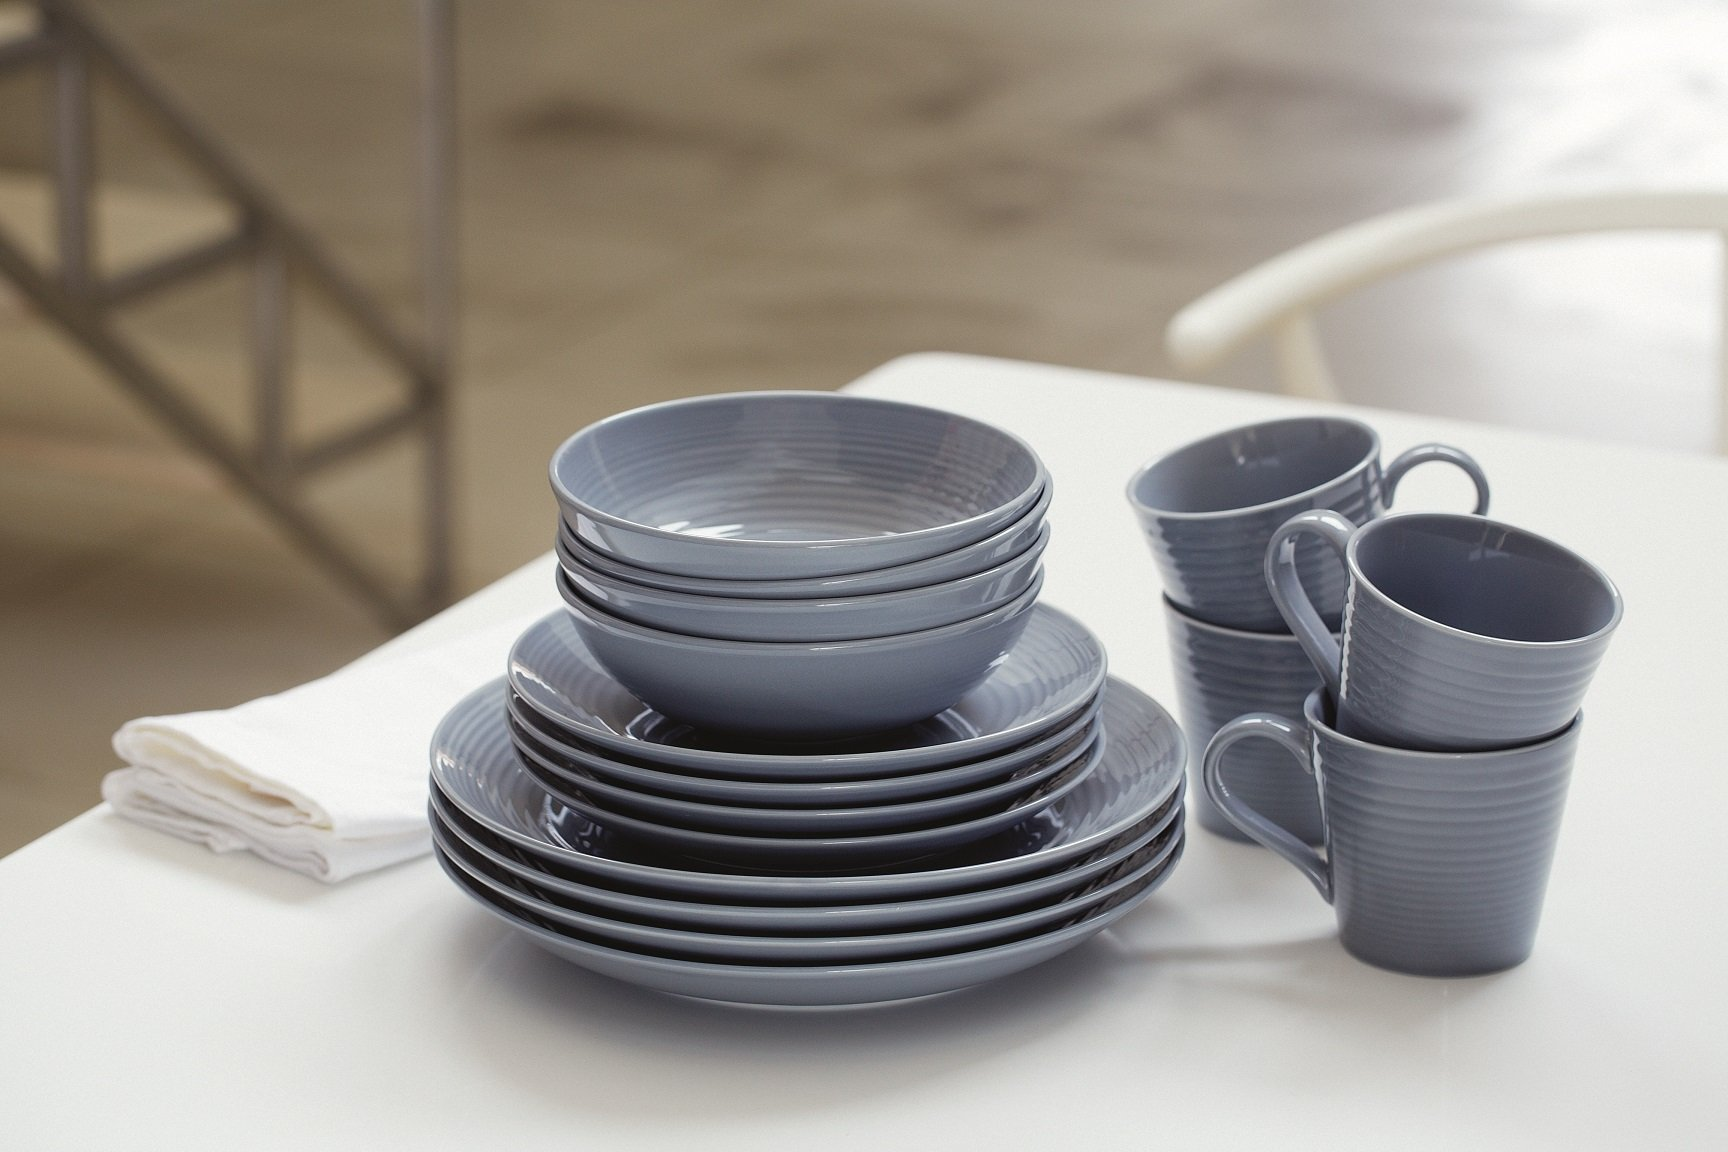 Royal Doulton 40003015 Gordon Ramsay Maze 16-Piece Dinner Set, Grey - Dishwasher Safe Material: Stoneware Maze by Gordon Ramsay - kitchen-tabletop, kitchen-dining-room, dinnerware-sets - 71CUhLgJRHL -